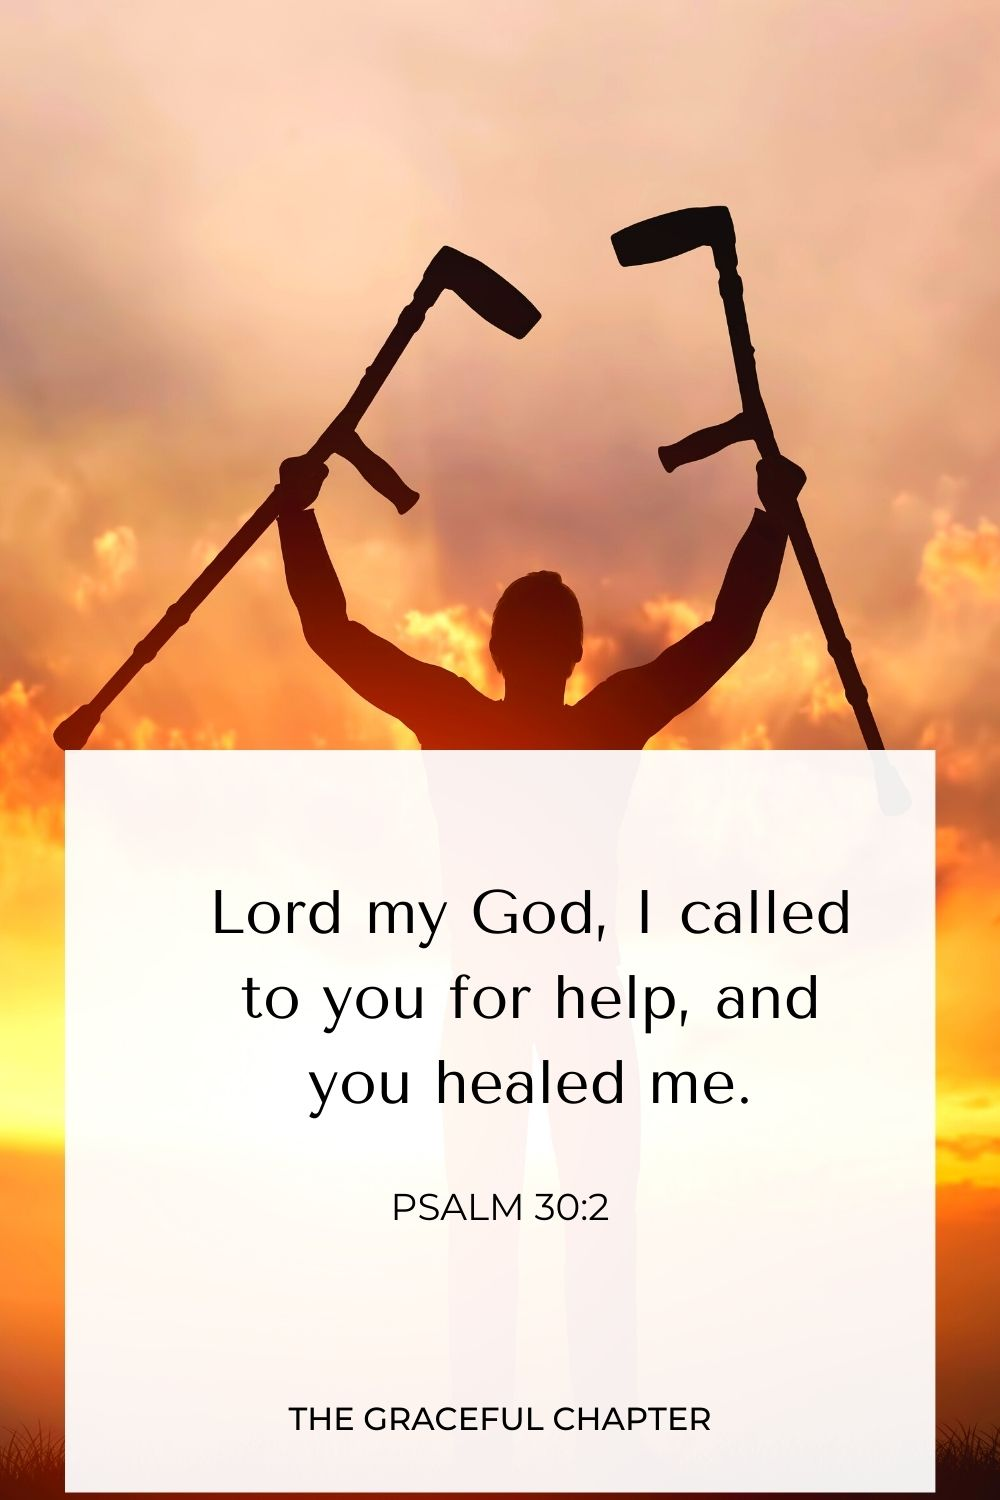 Lord my God, I called to you for help, and you healed me. Psalm 30:2